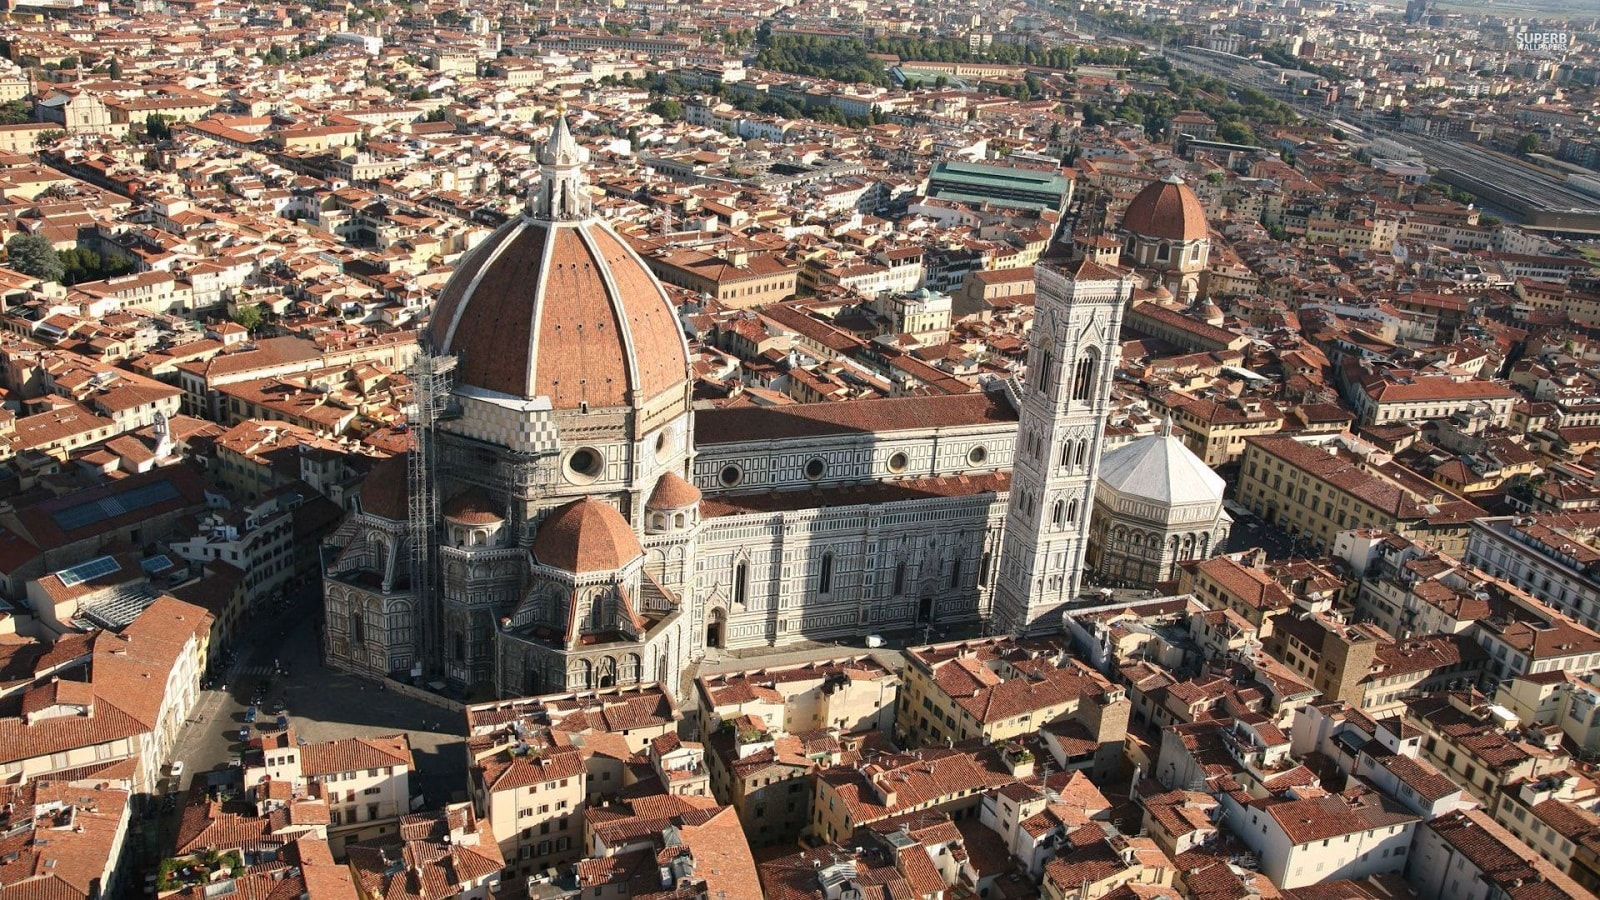 Florence widescreen for desktop